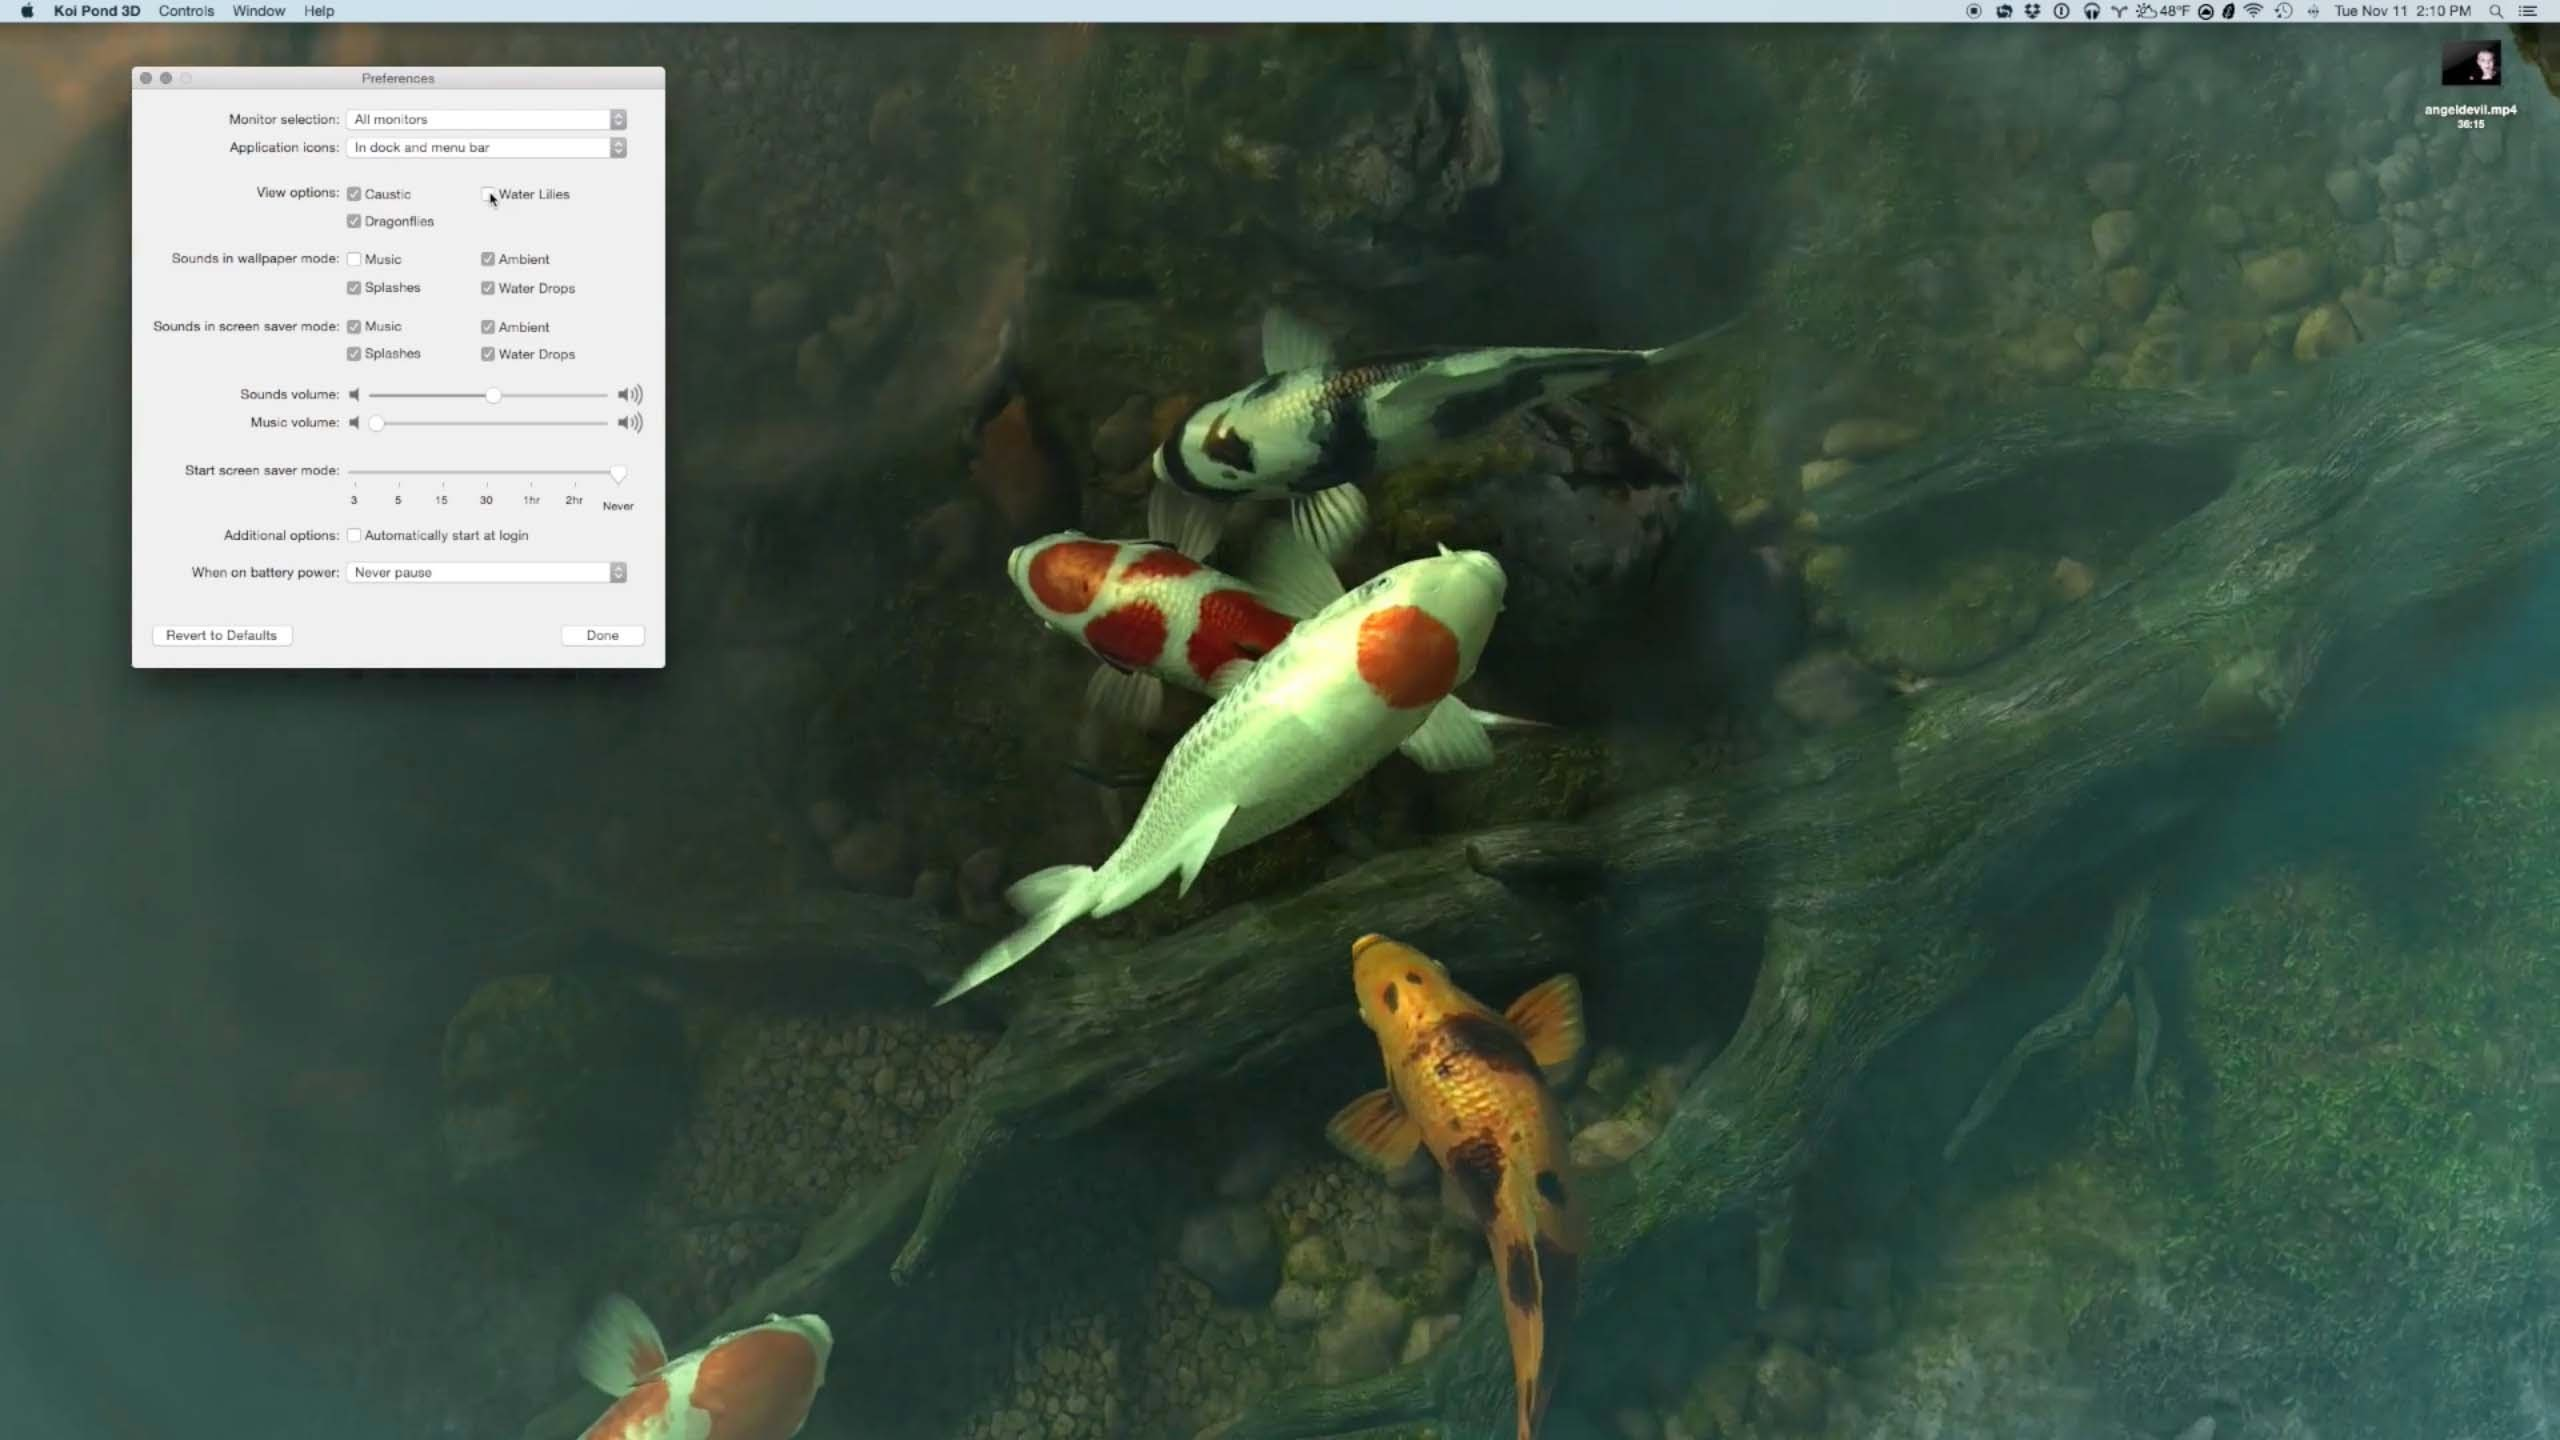 2560x1440 ASMR Live Desktop Demo: Sharks 3D and Koi Pond 3D with water sounds -  YouTube